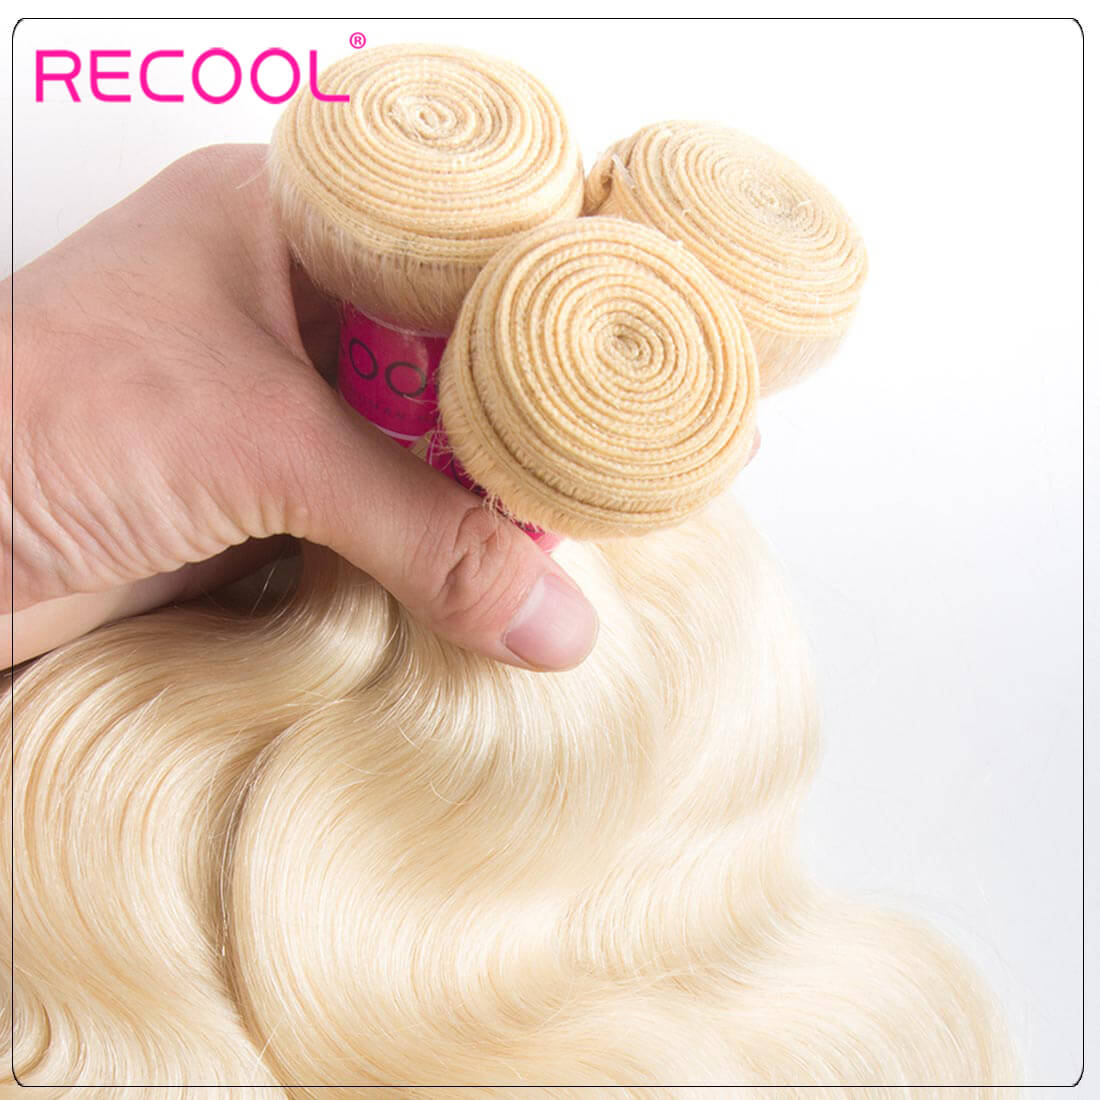 Blonde Hair Bundles 613 Virgin Hair Body Wave, 100% Virgin Blonde Human Hair Weave Body Wave Bundles 4